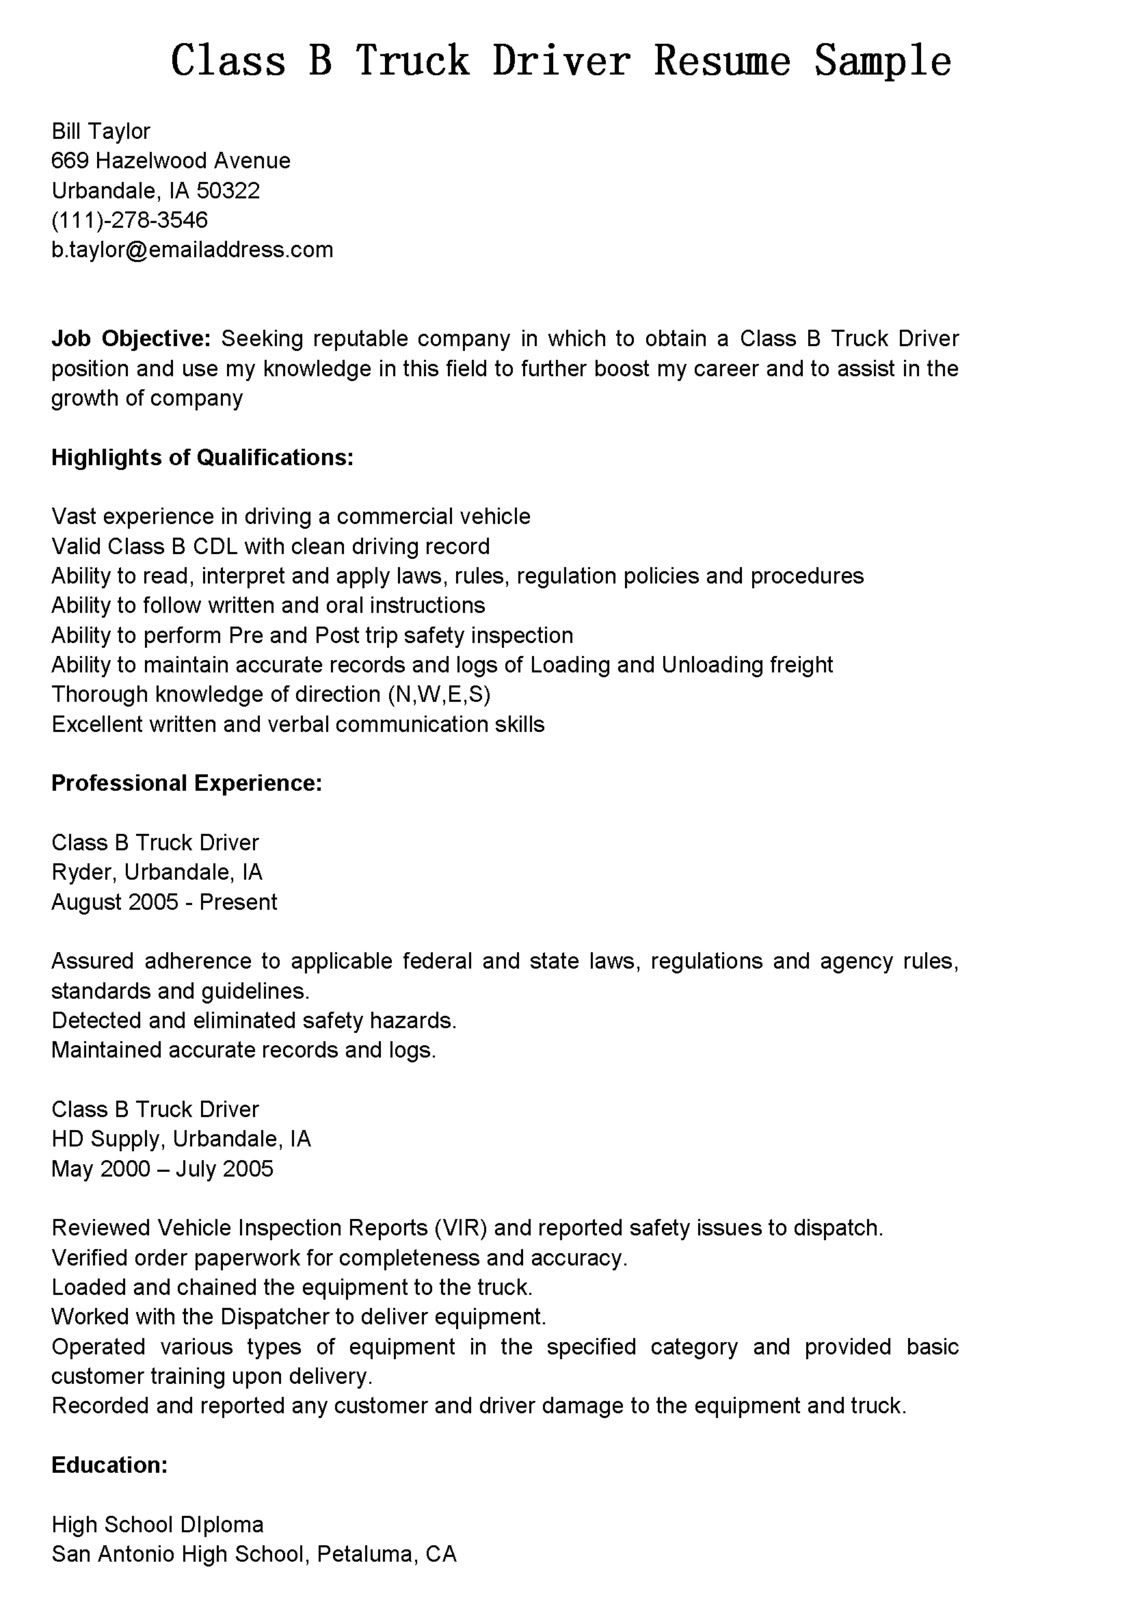 truck drivers resume sample latest format examples job driver objective work experience Resume Truck Driver Resume Objective